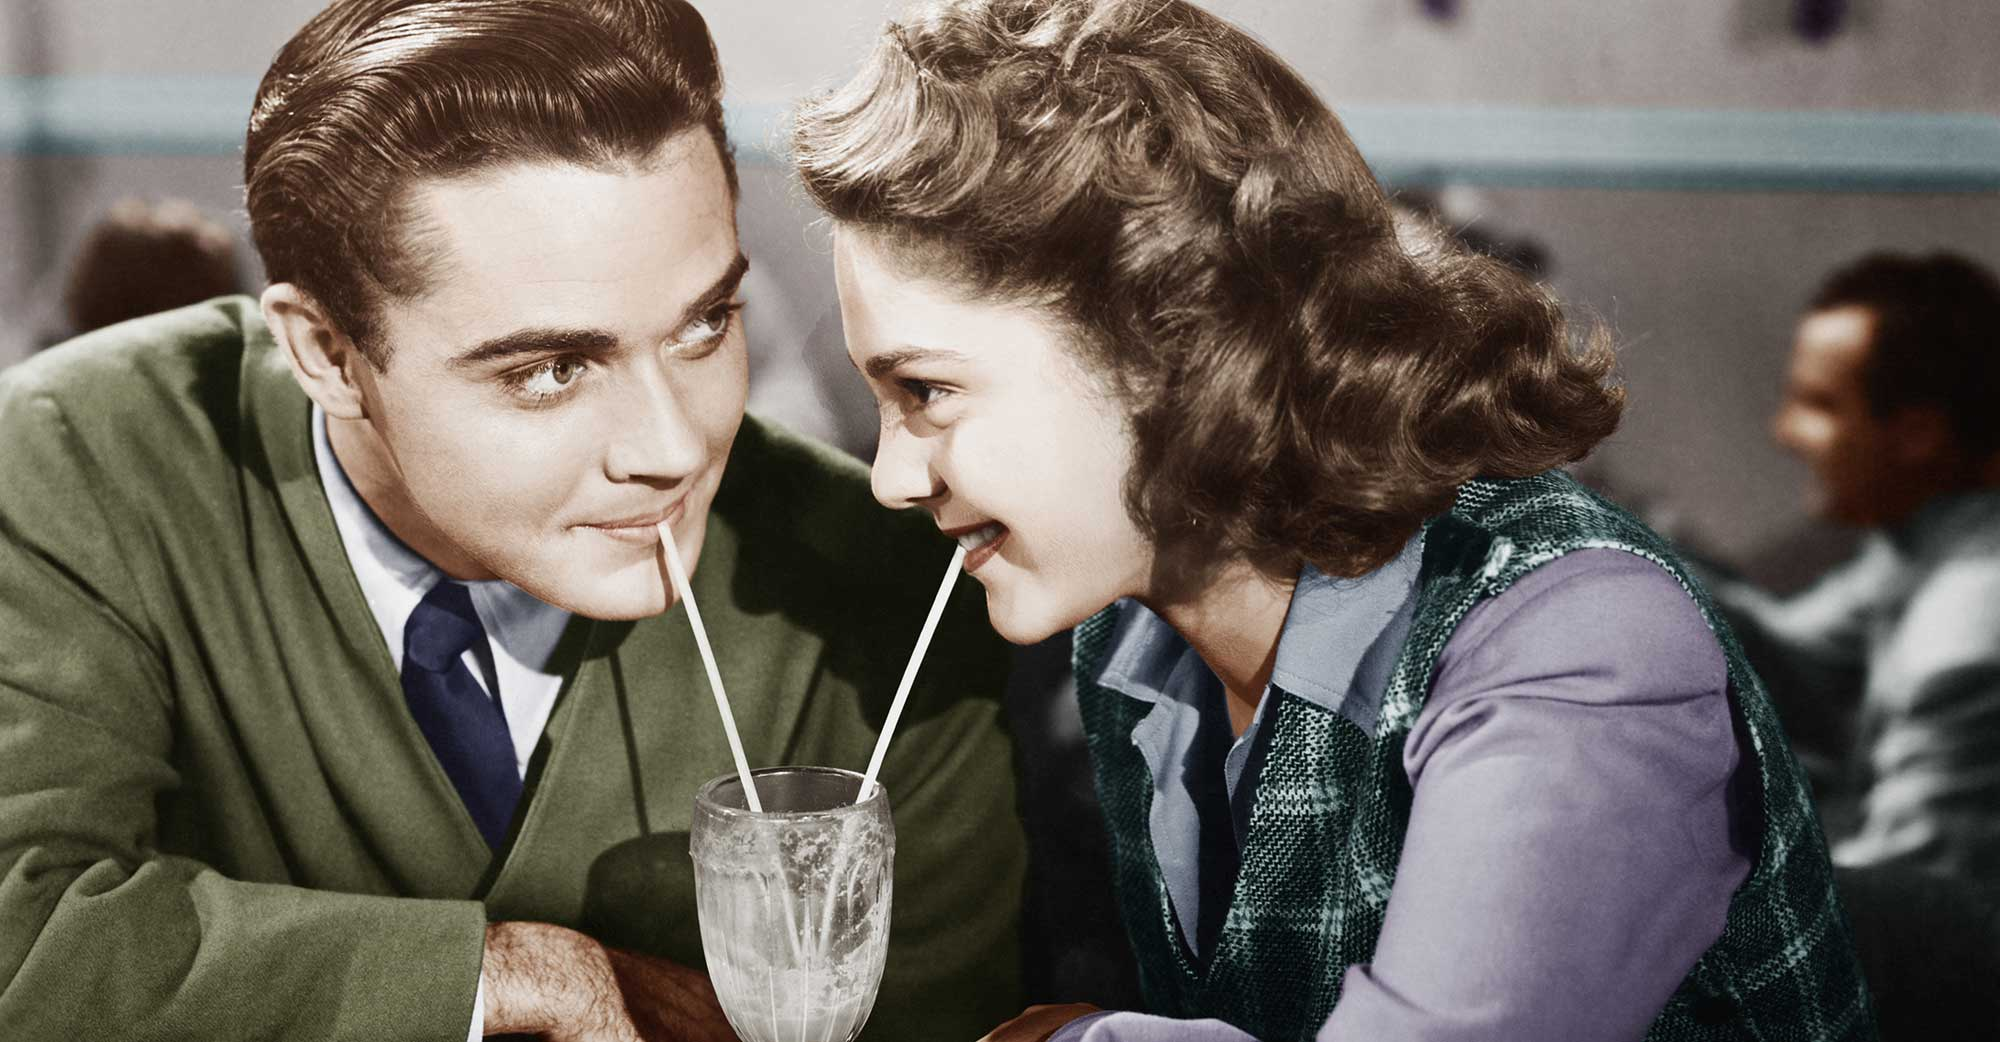 Couple Drinking Together Using Straws